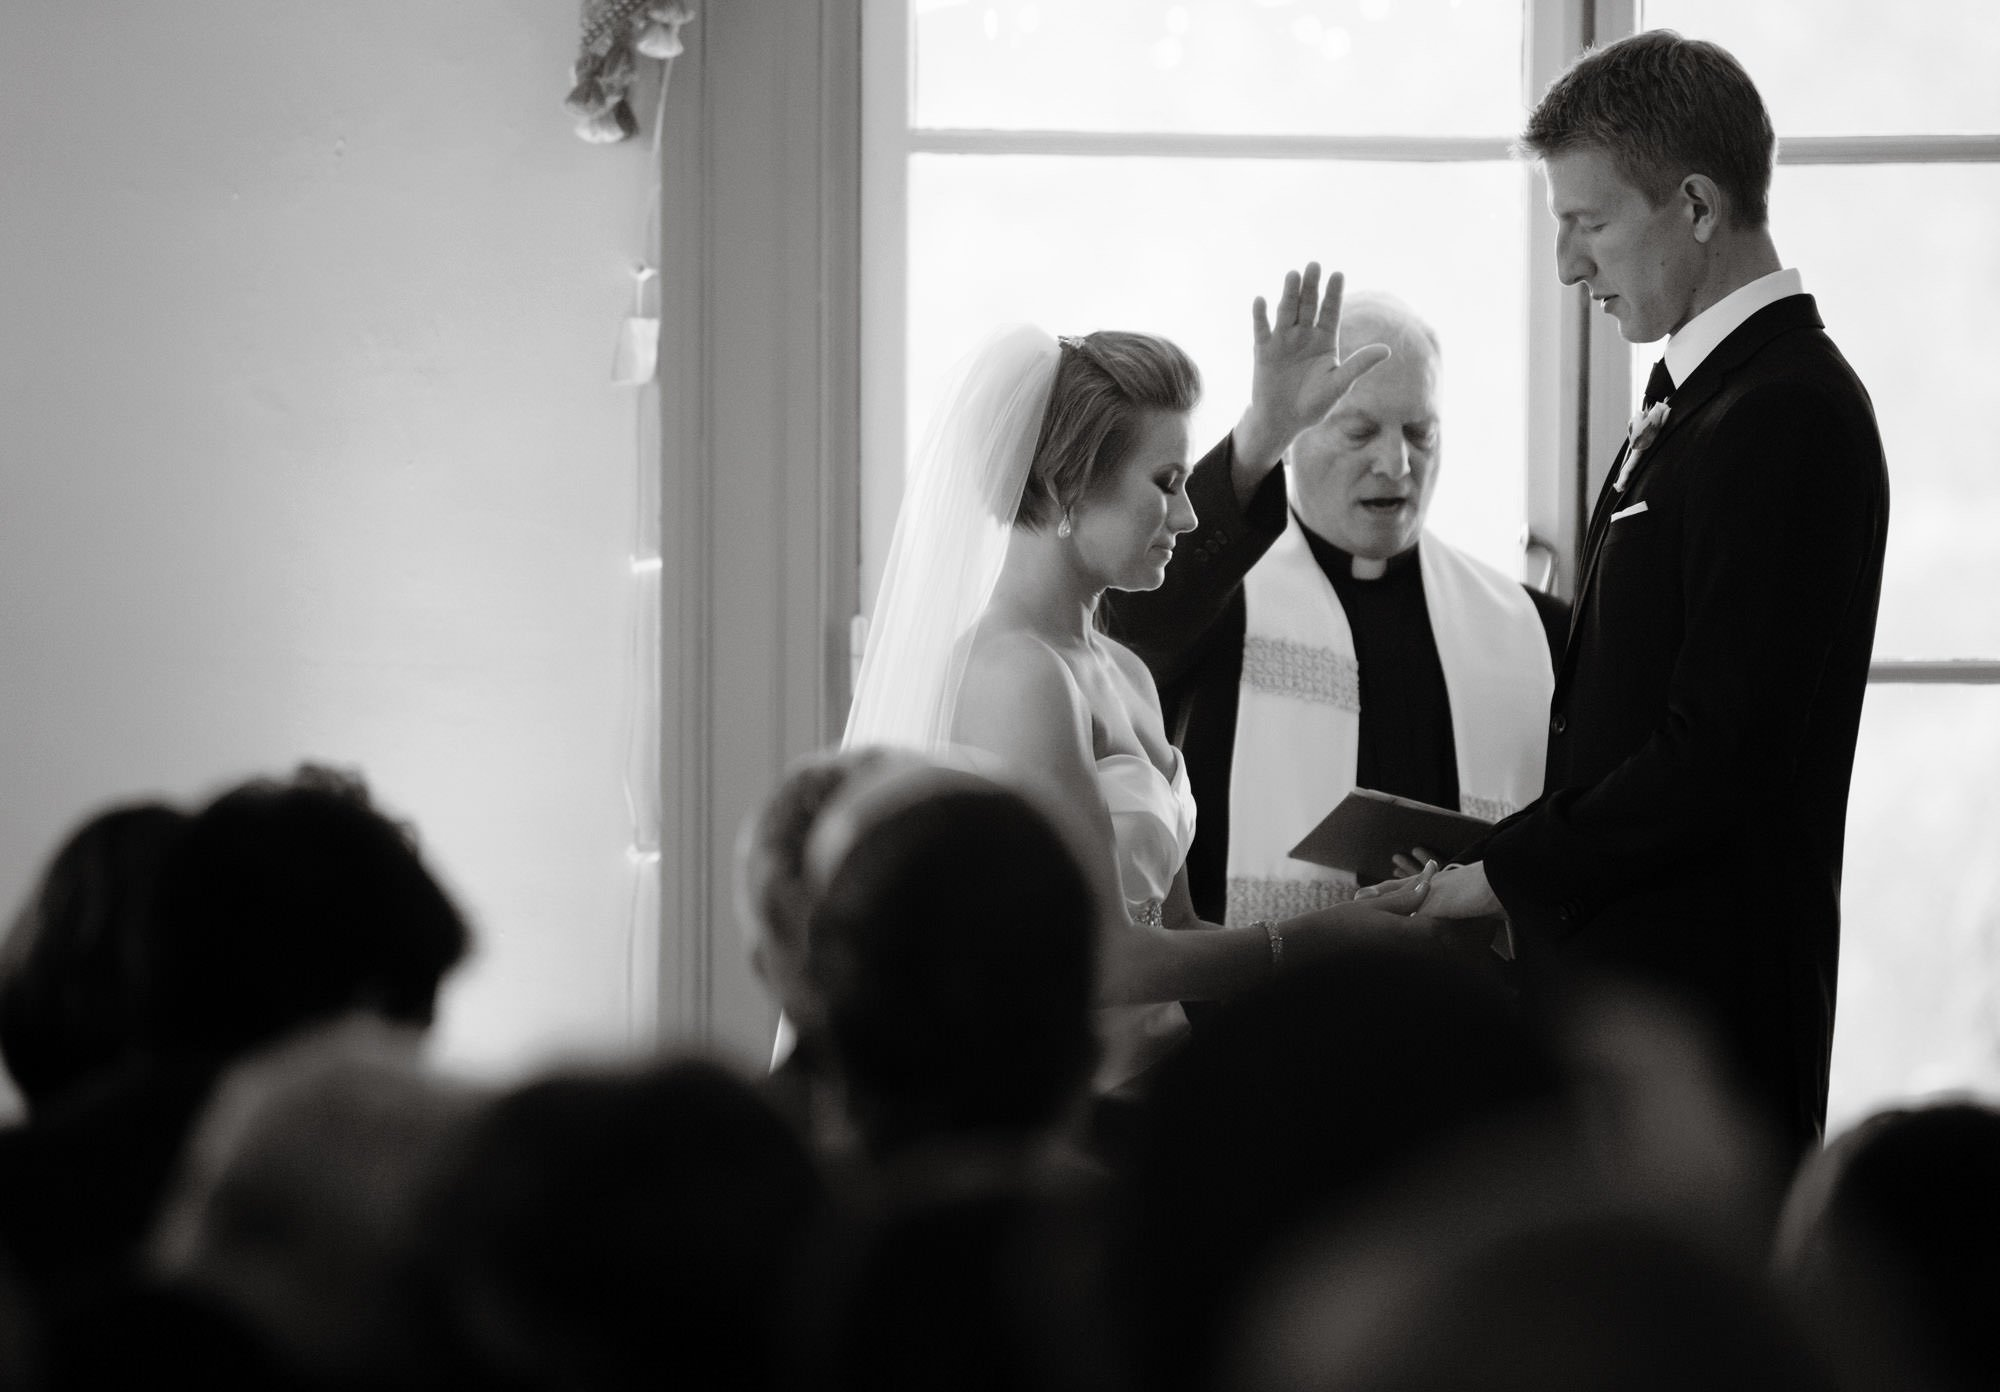 The bride and groom pray during the wedding ceremony.